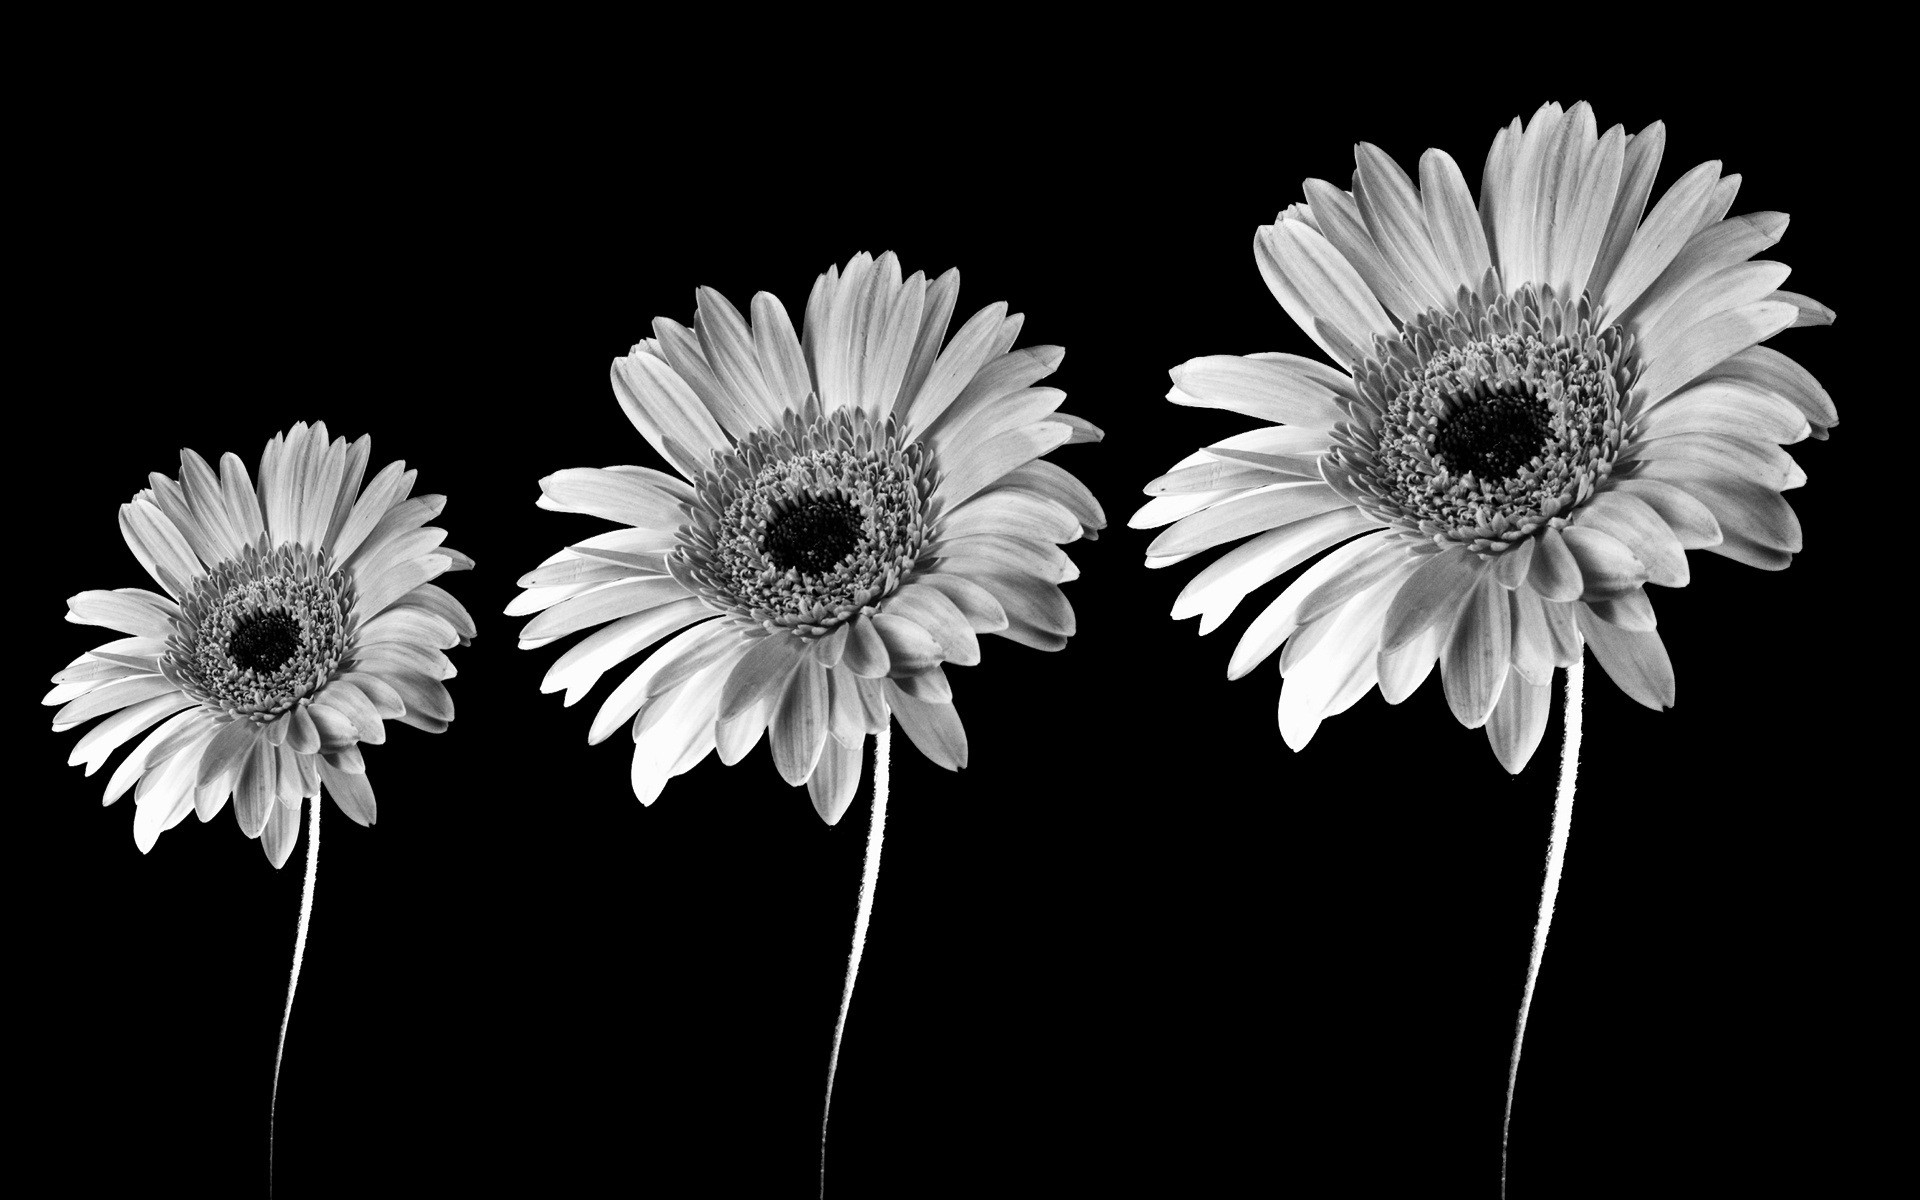 Black and white flowers wallpaper 28 wide wallpaper black and white flowers wallpaper 28 wide wallpaper mightylinksfo